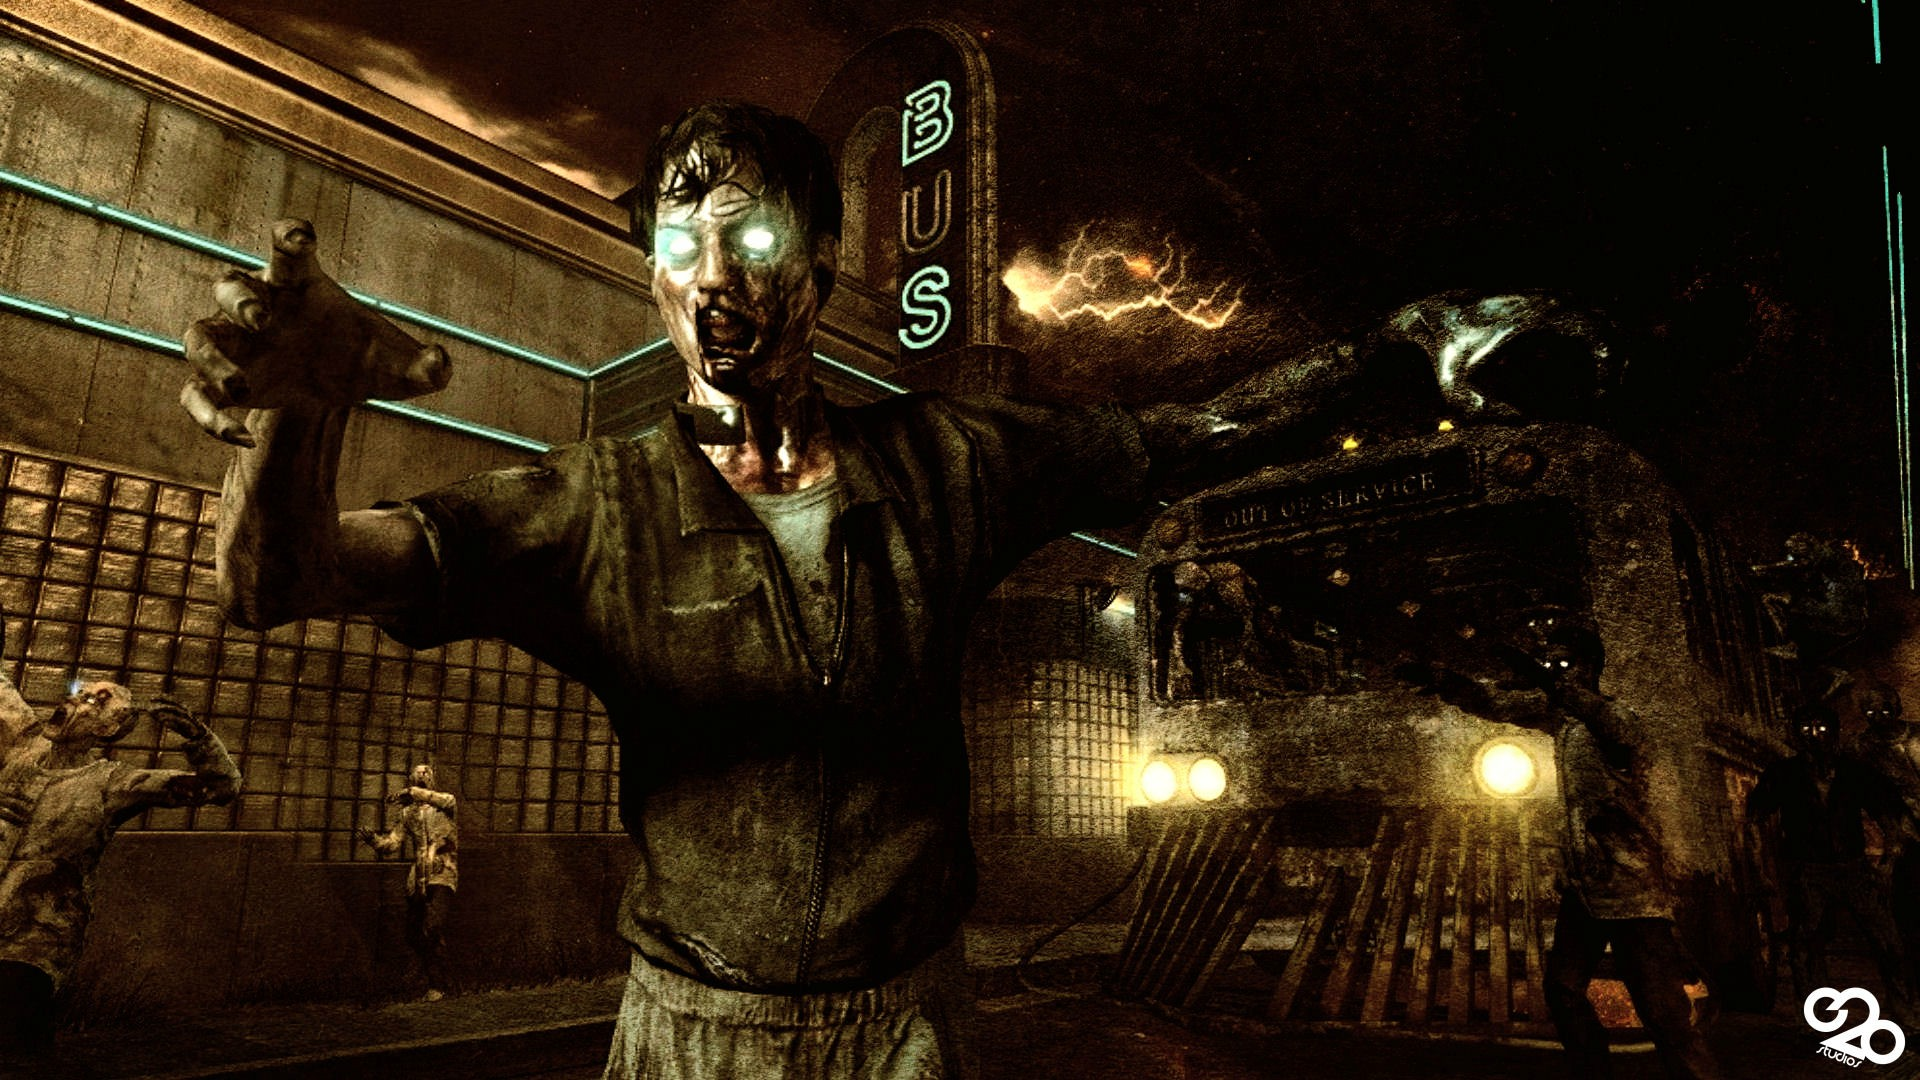 black ops zombies wallpaper 1920x1080Call Of Duty Black Ops Ii Ps3 1920x1080